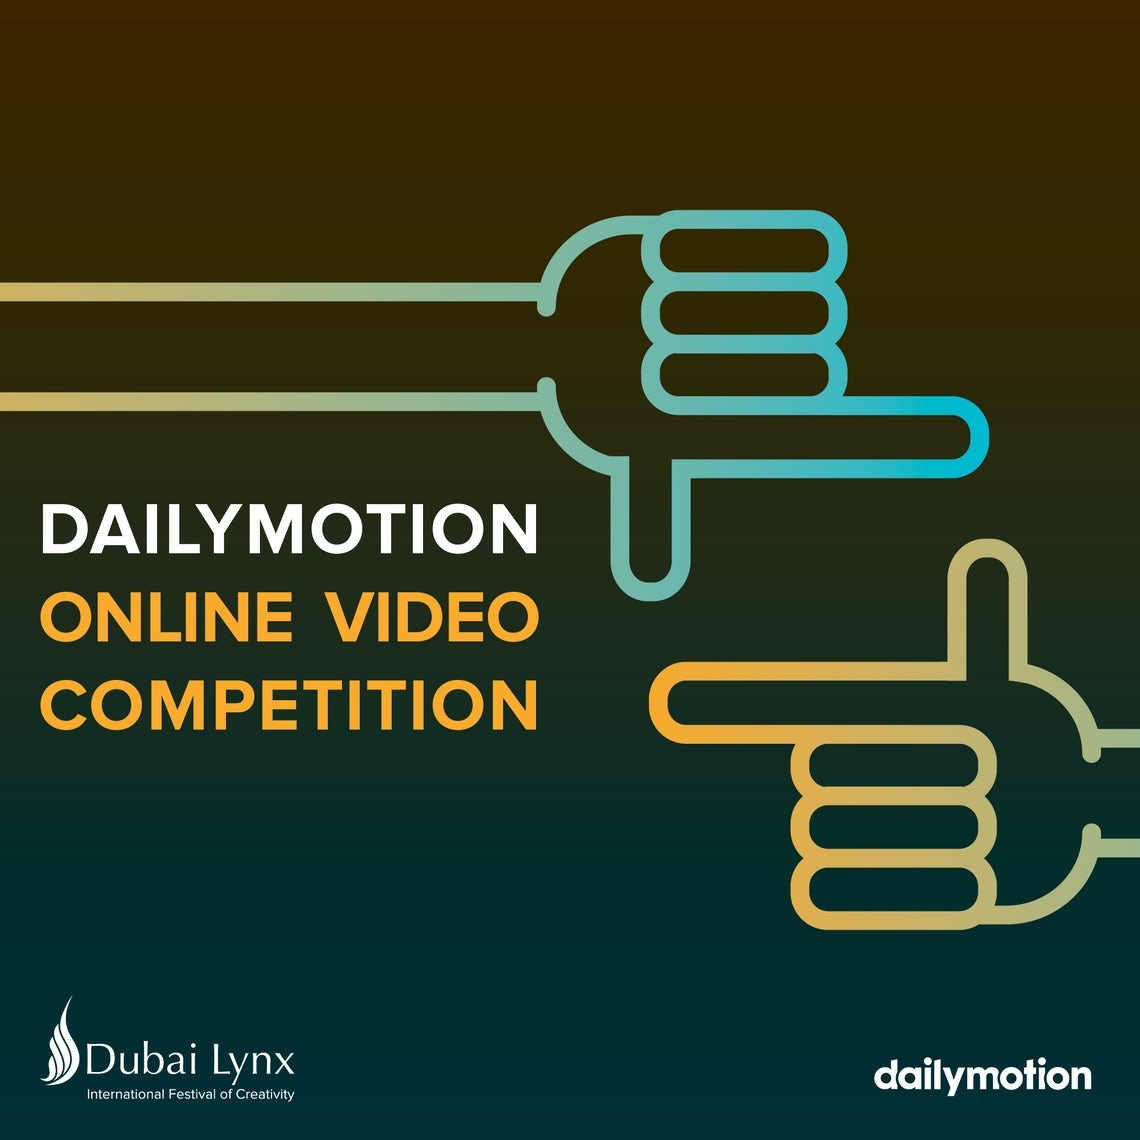 Daily Motion online video competition